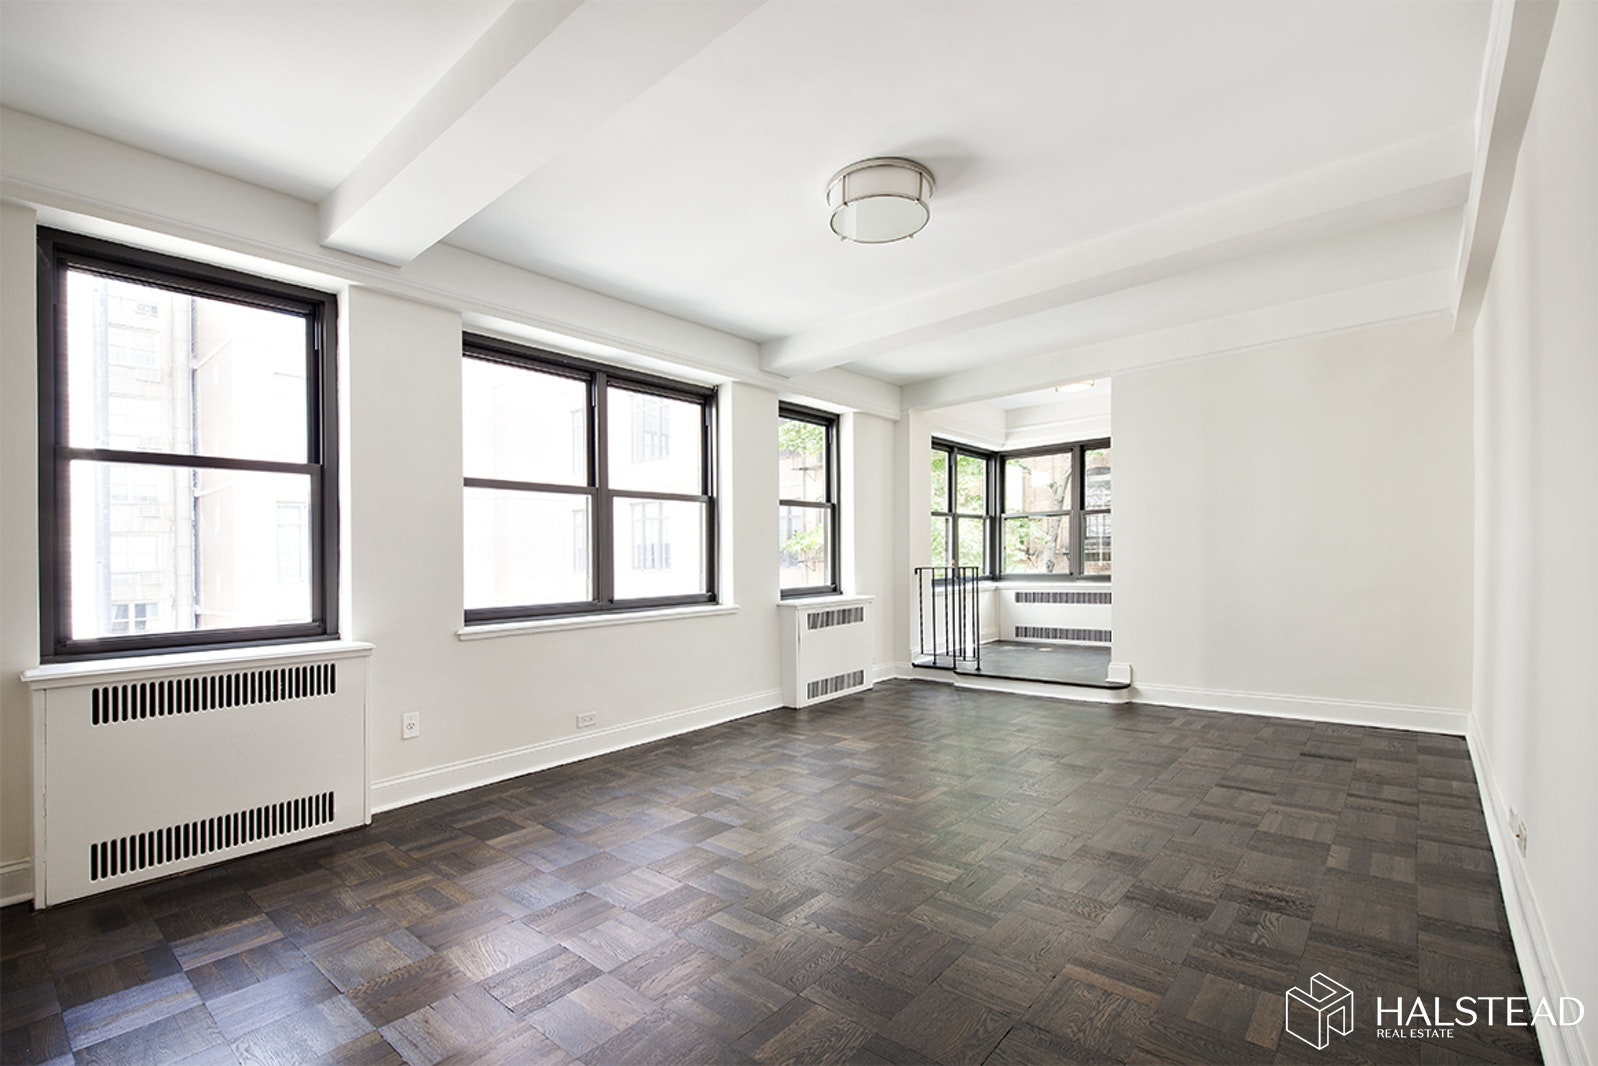 340 East 52nd Street 2h, Midtown East, NYC, 10022, Price Not Disclosed, Rented Property, Halstead Real Estate, Photo 1